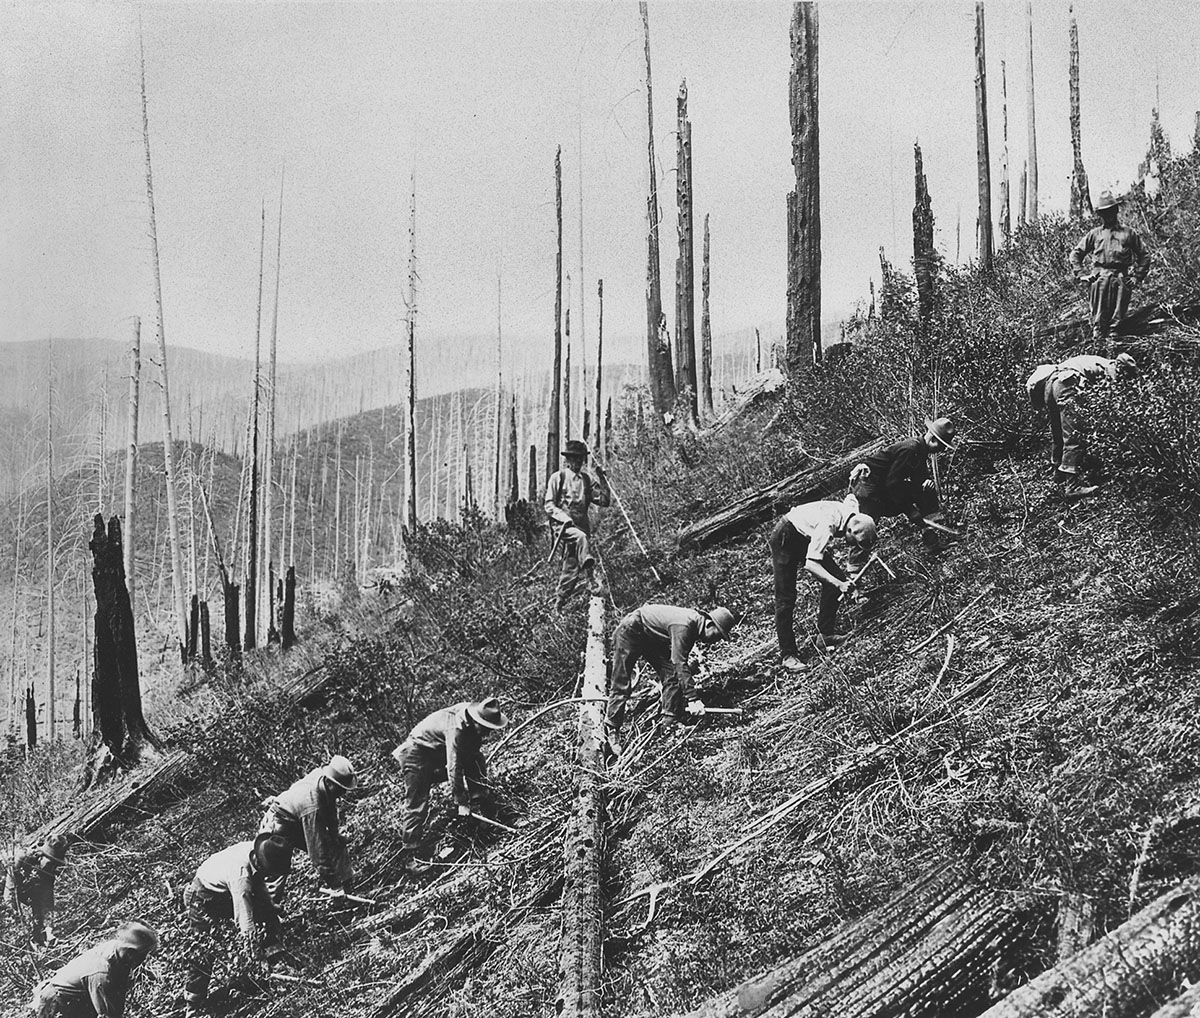 """Civilian Conservation Corps (CCC) enrollees clearing land, around 1934. The CCC—popularly known as """"Roosevelt's Tree Army""""—was perhaps the nation's first green jobs program. It sent unemployed Americans to work in national parks and forests clearing brush and dead vegetation, planting trees, building firebreaks, and improving campsites. Courtesy, National Archives"""